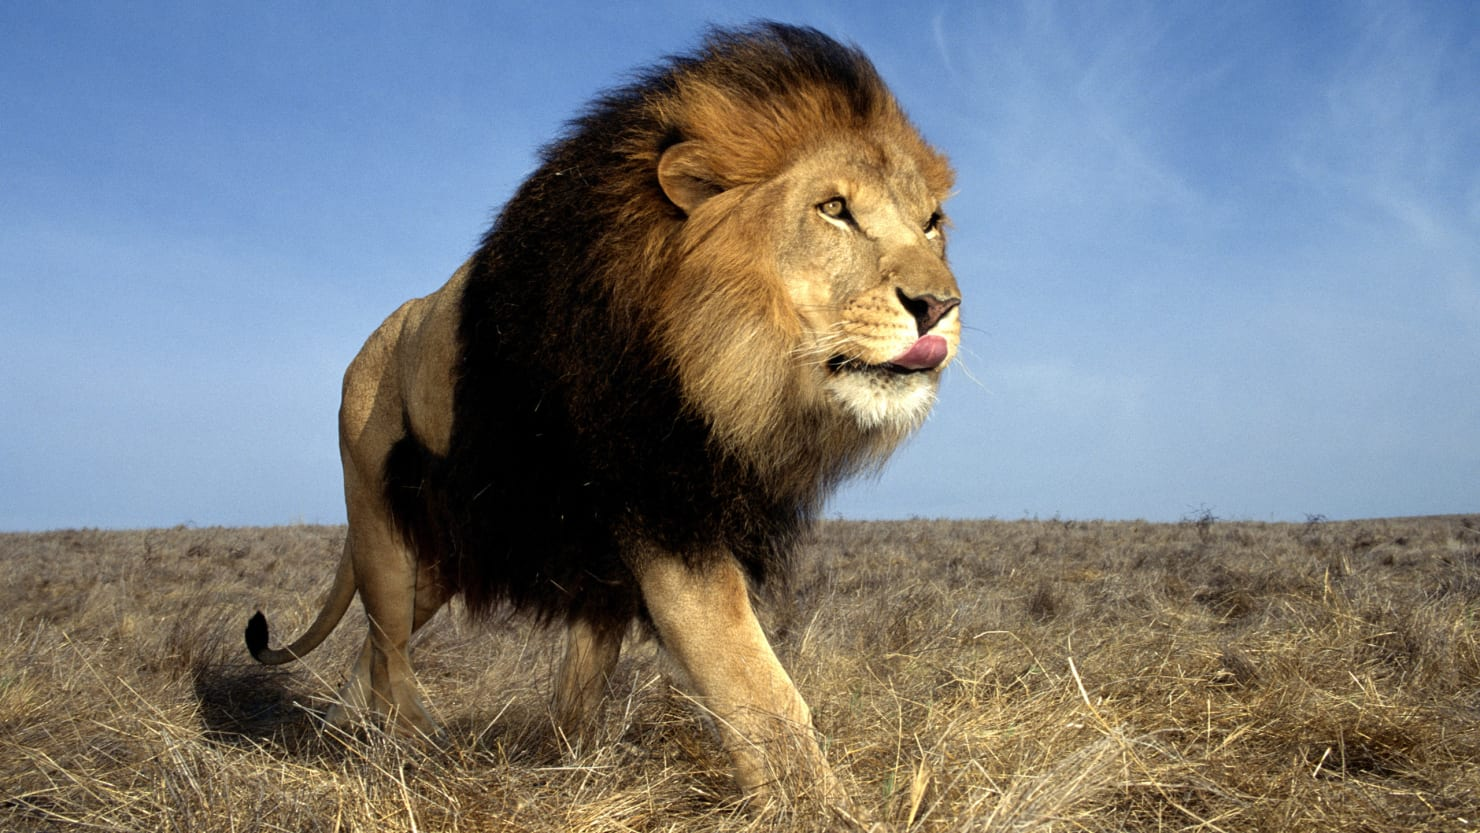 King Crown Hd Wallpaper African Lions Born Free No Born Captive To Be Killed